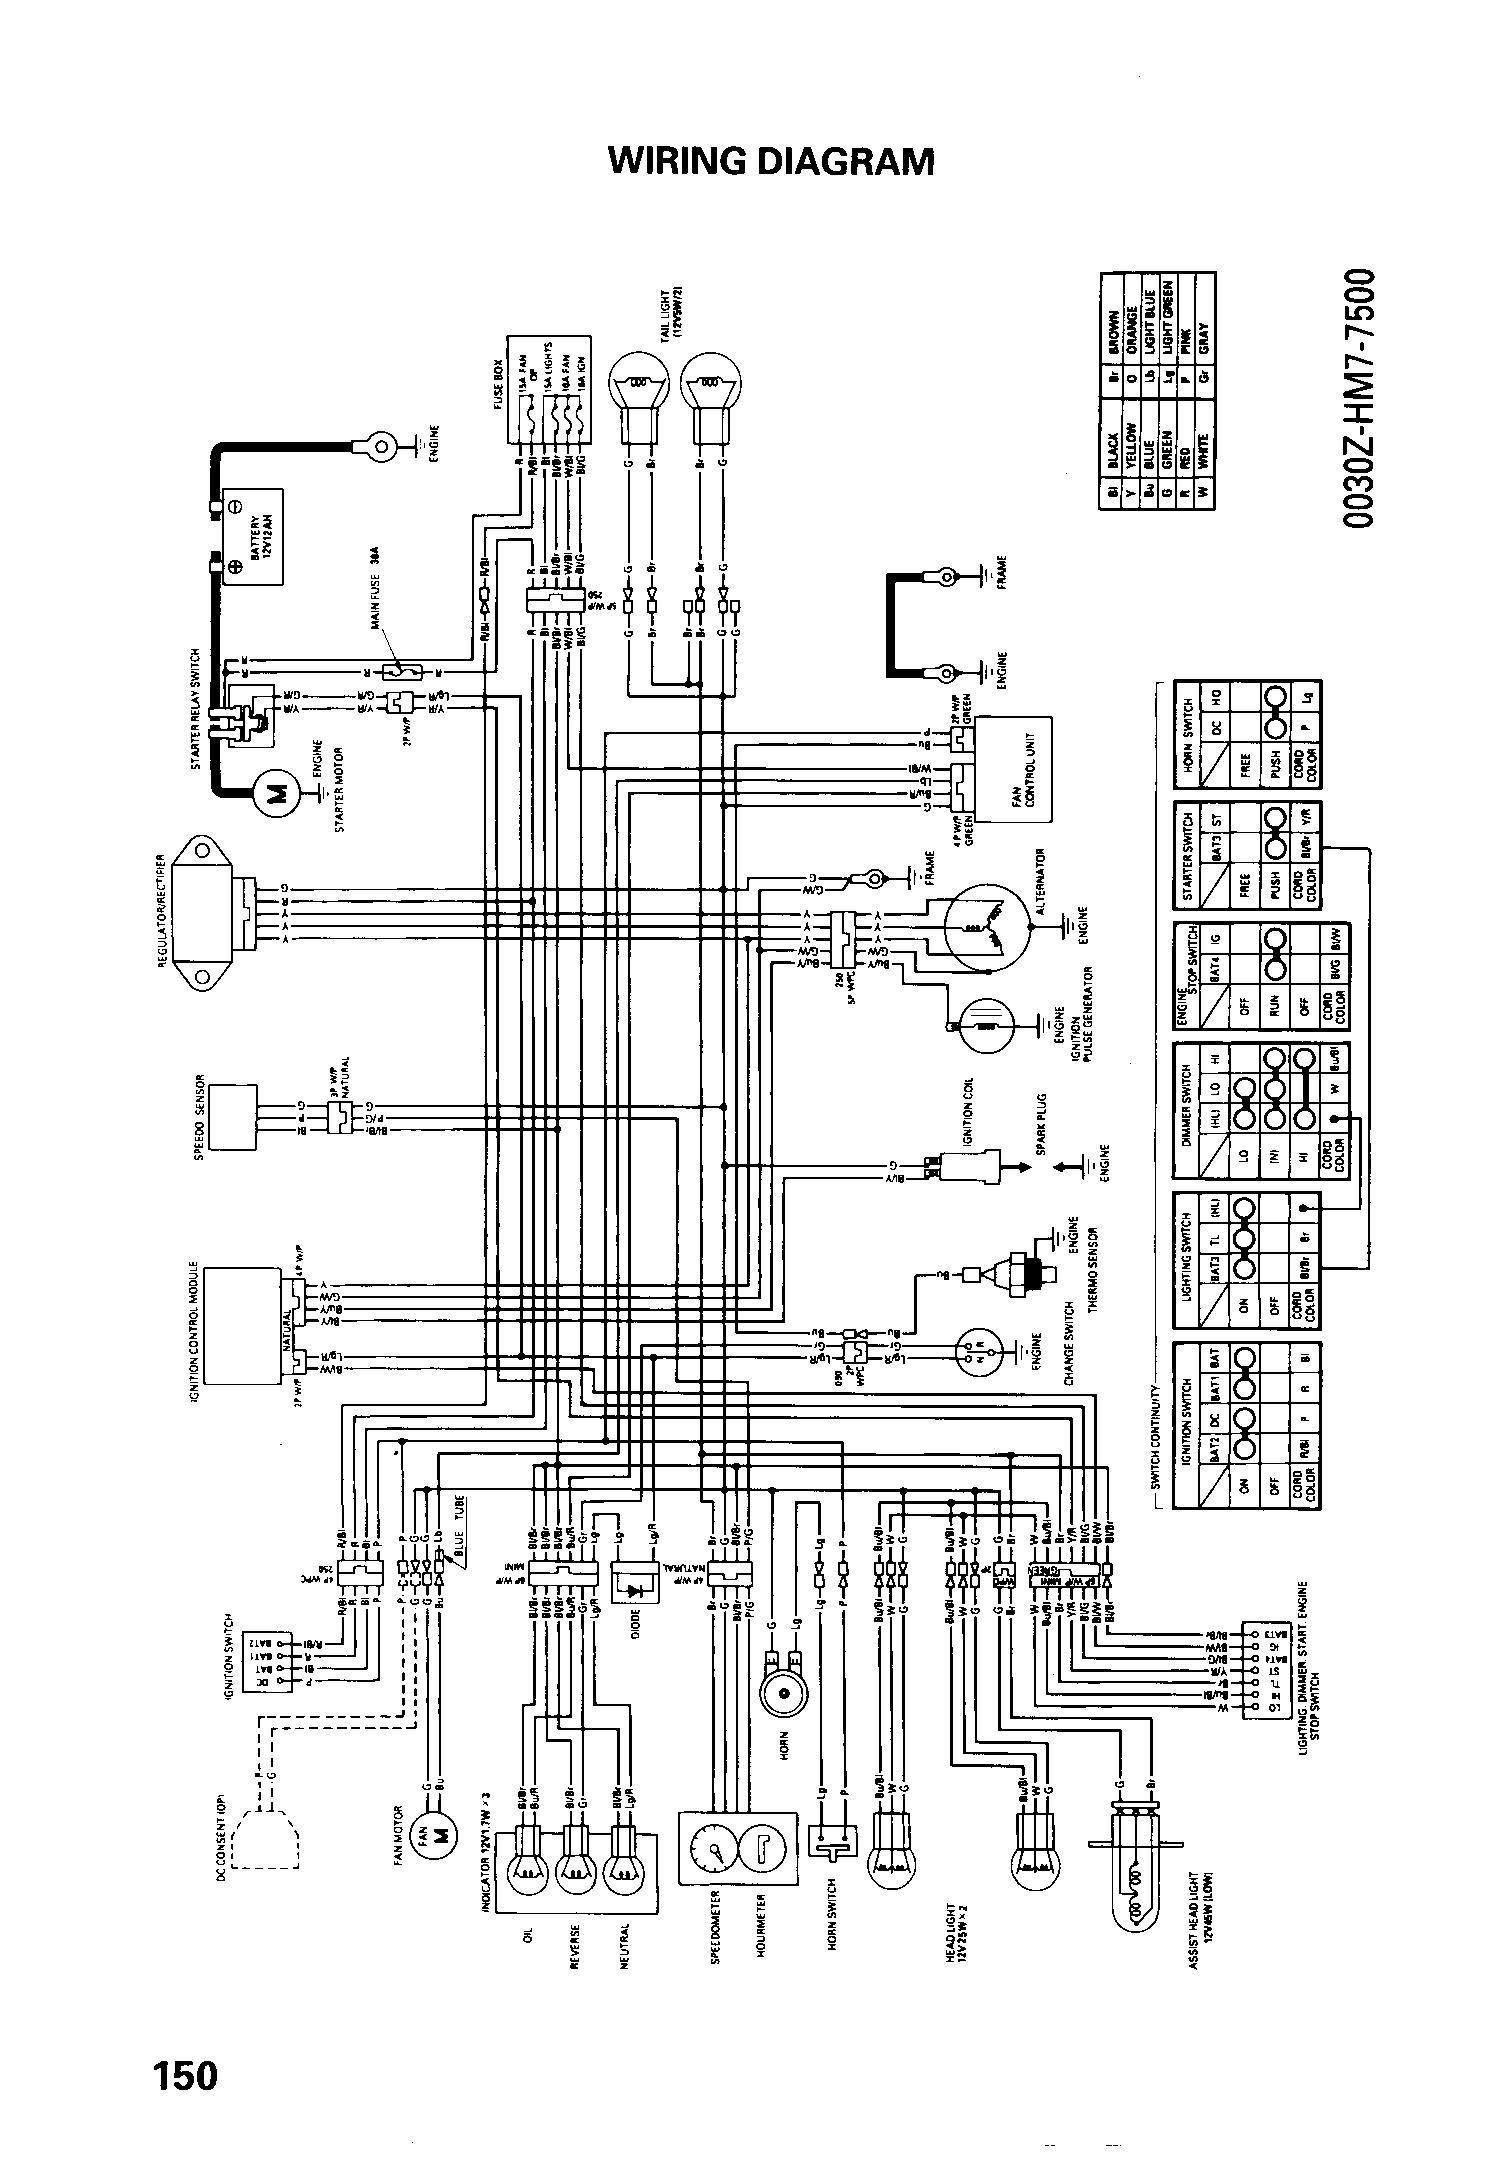 Honda Trx450r Headlight Wiring Diagram